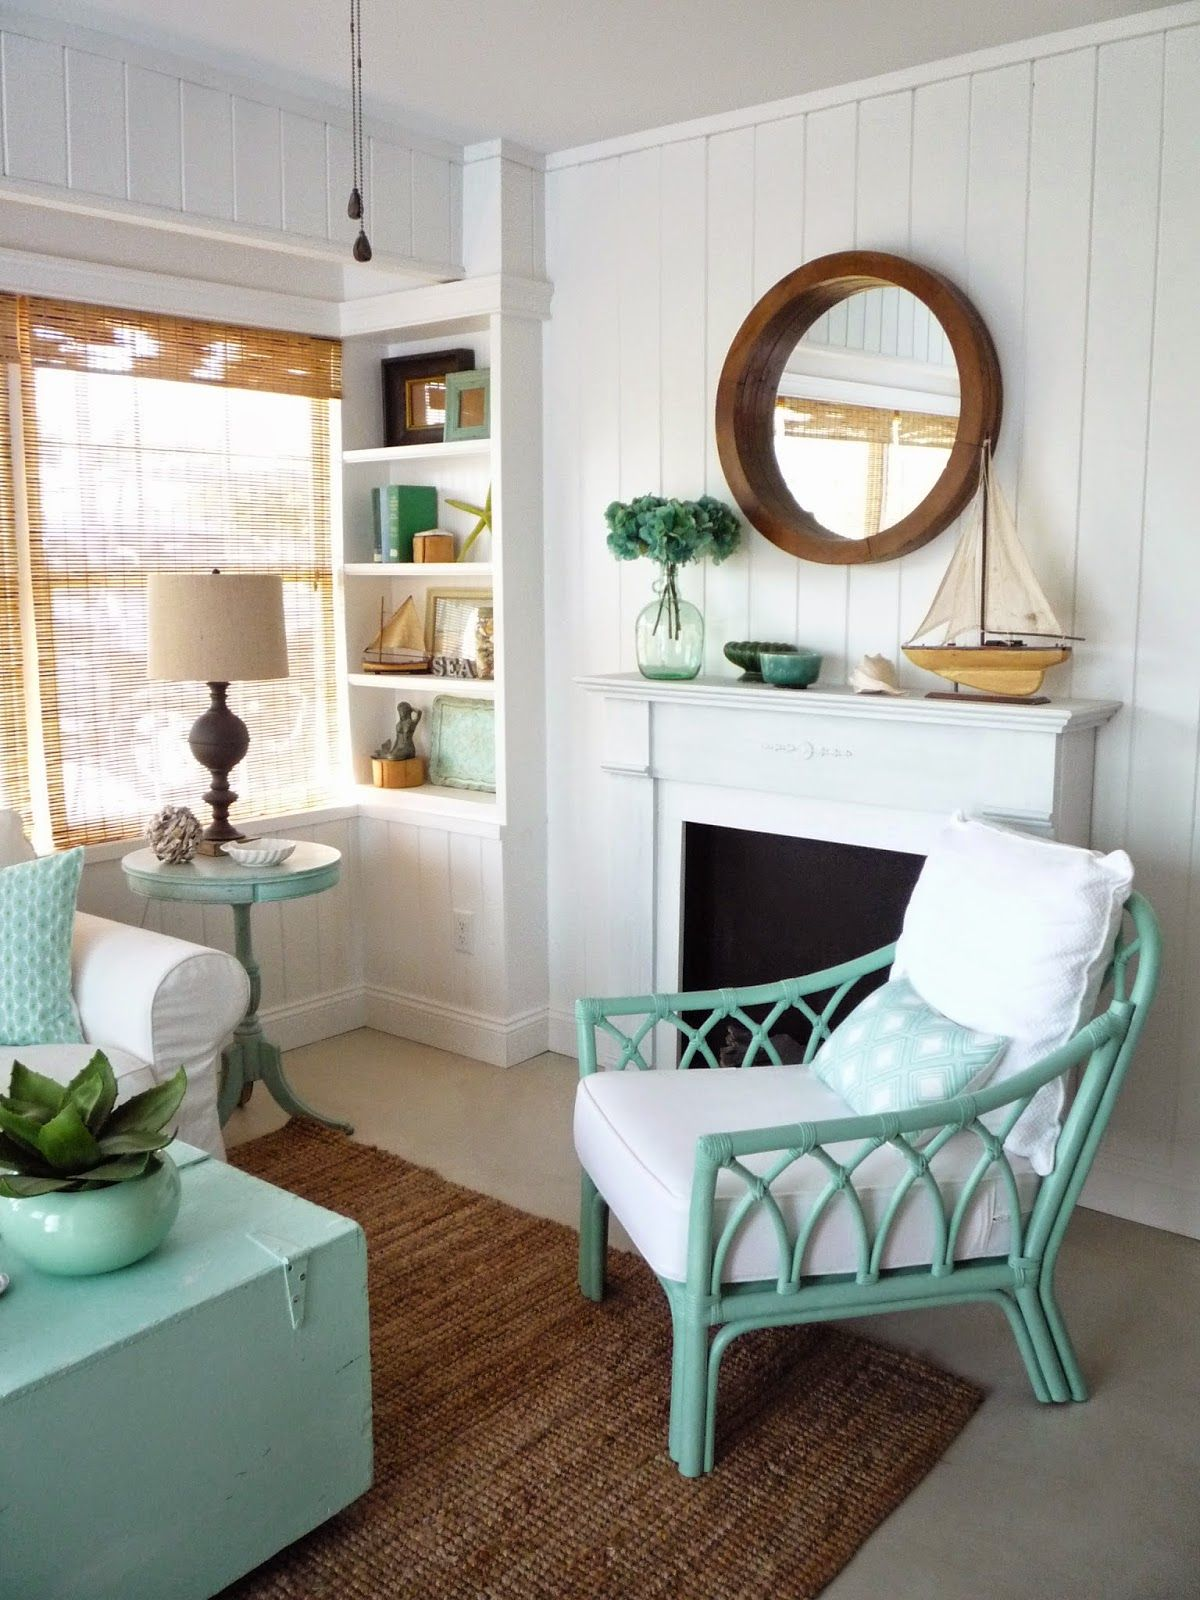 Flea market trixie beach cottage sitting room before - Small living room before and after ...